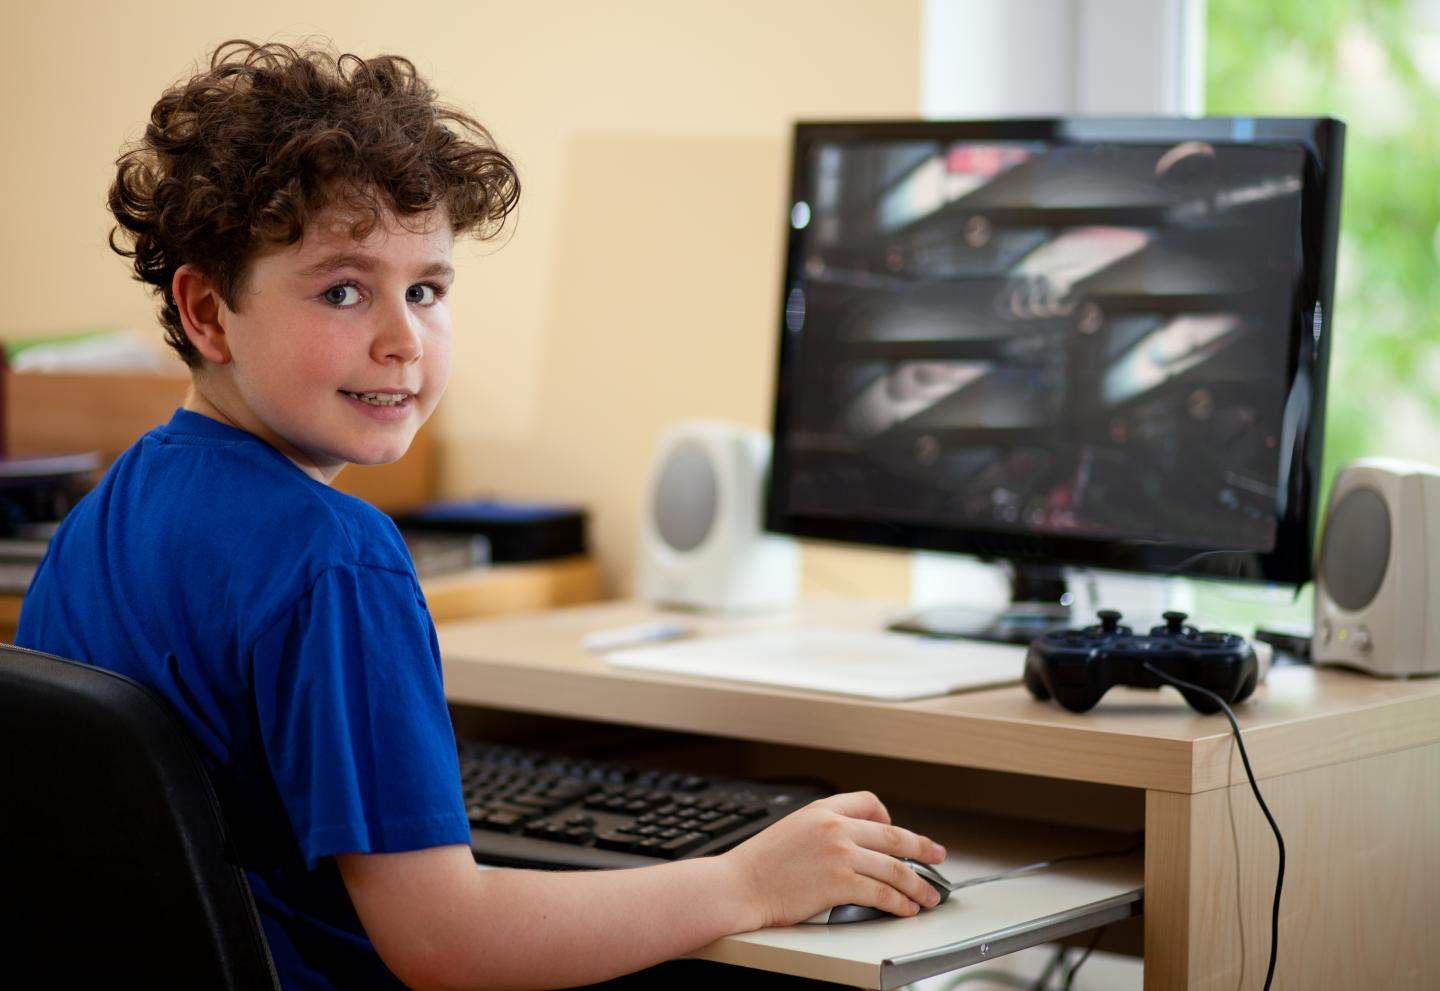 Heavy TV and Computer Use Impacts Children's Academic Results